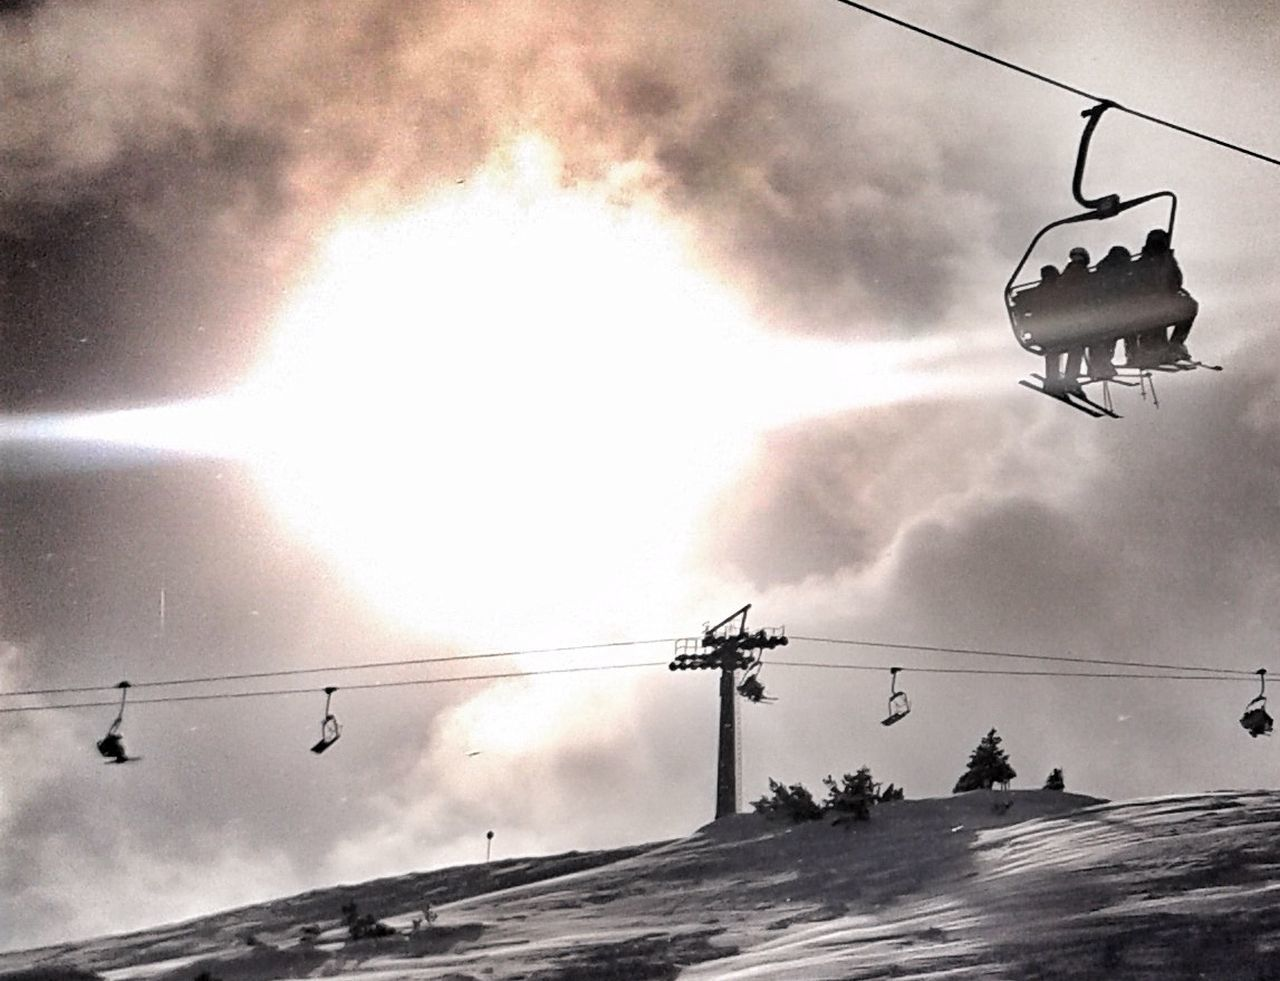 cable, sky, hanging, low angle view, outdoors, silhouette, nature, no people, day, cloud - sky, sunset, overhead cable car, flying, bird, animal themes, building exterior, architecture, ski lift